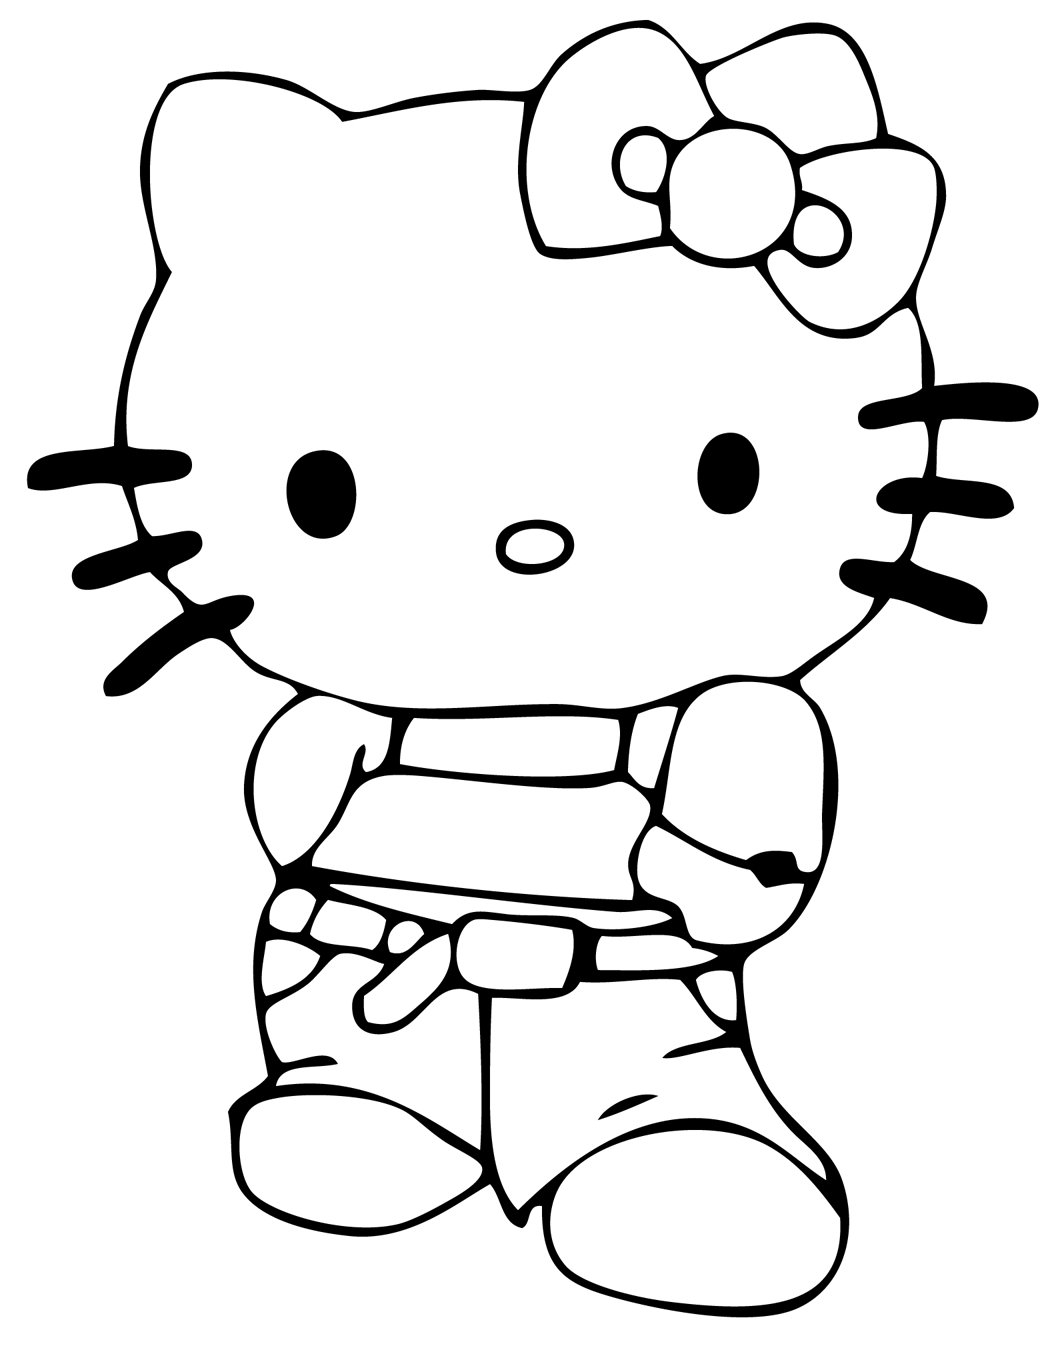 coloring cute hello kitty drawing hello kitty face drawing at paintingvalleycom explore cute drawing kitty hello coloring